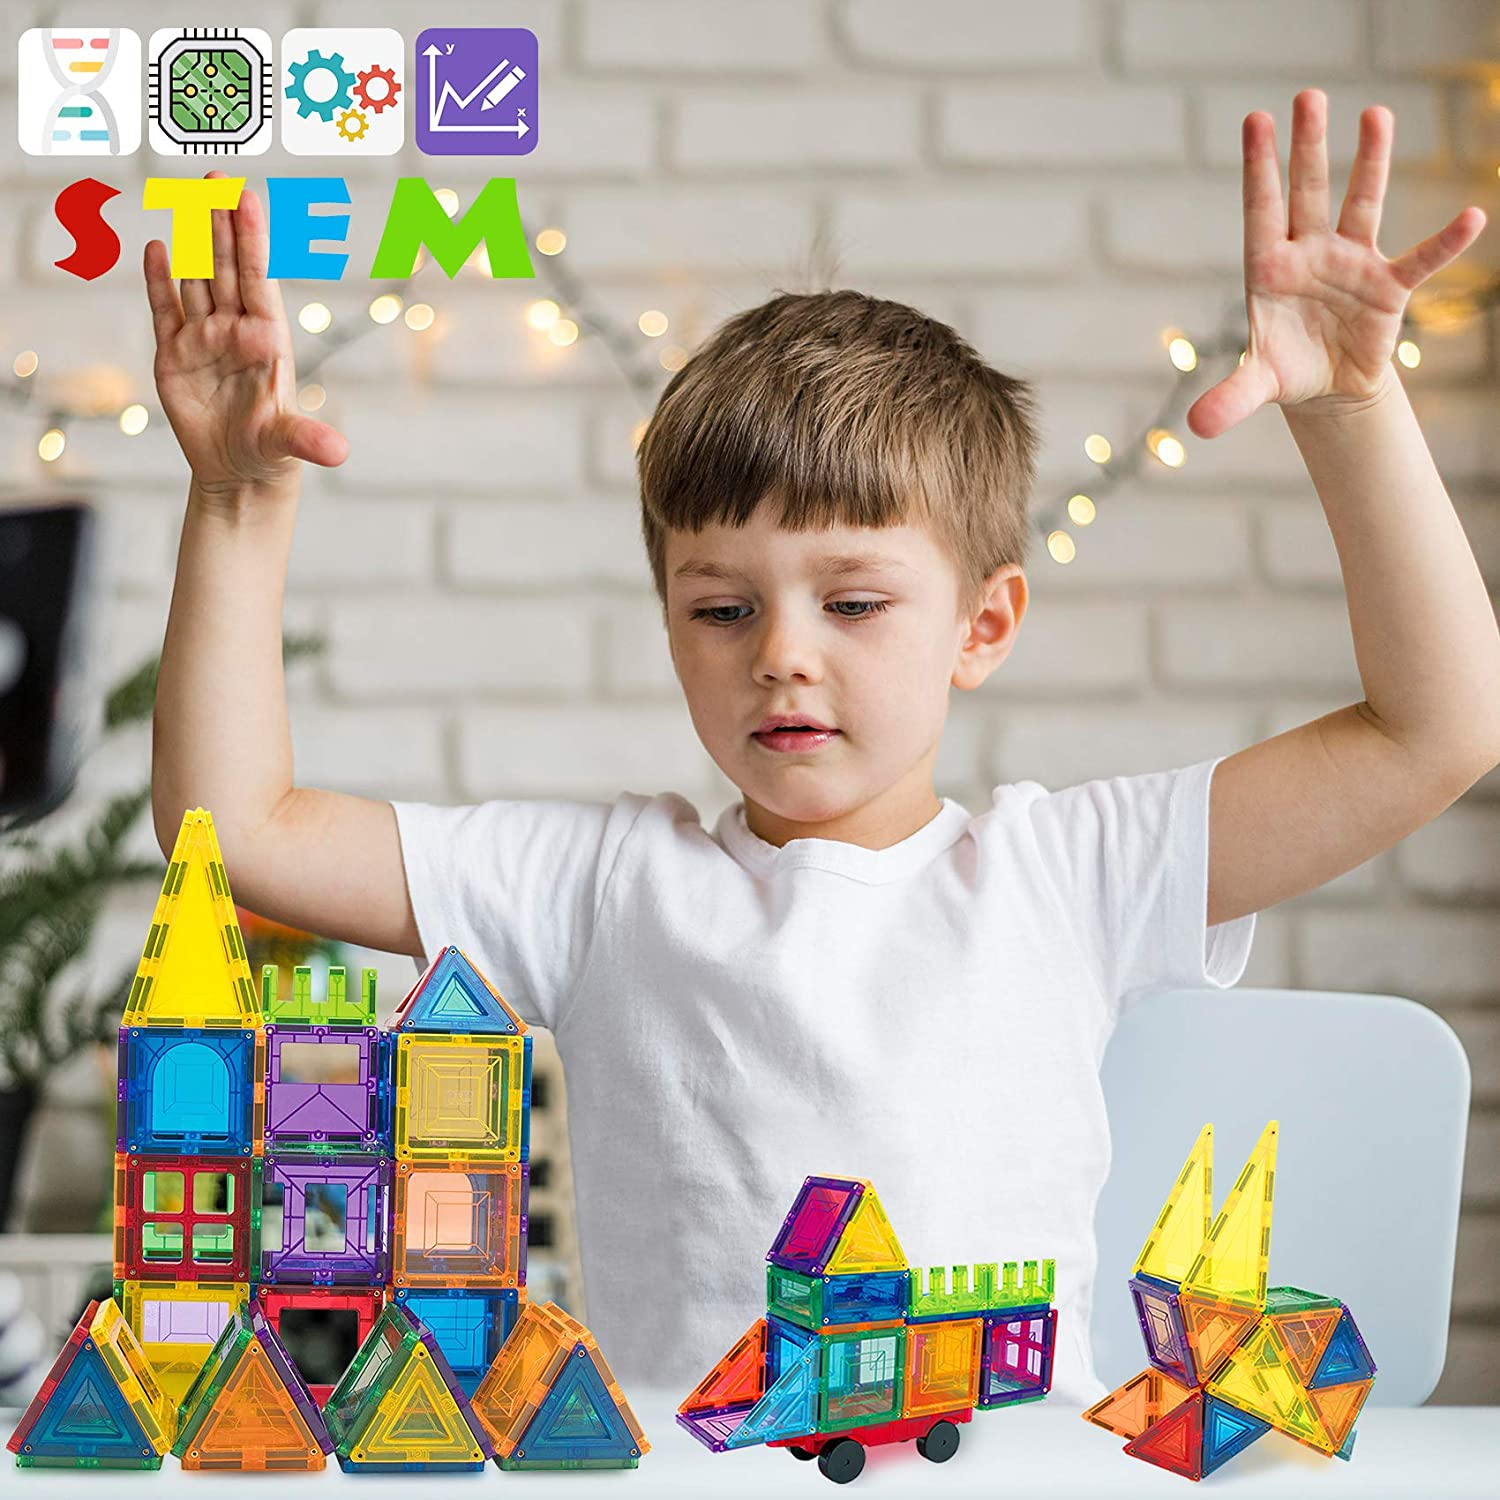 68 Piece Car Wheel and Idea Book Included 3D Construction Magnet Tiles Toys Set STEM Educational Gifts for Age 3+ JUMAGA Magnetic Building Blocks for Kids